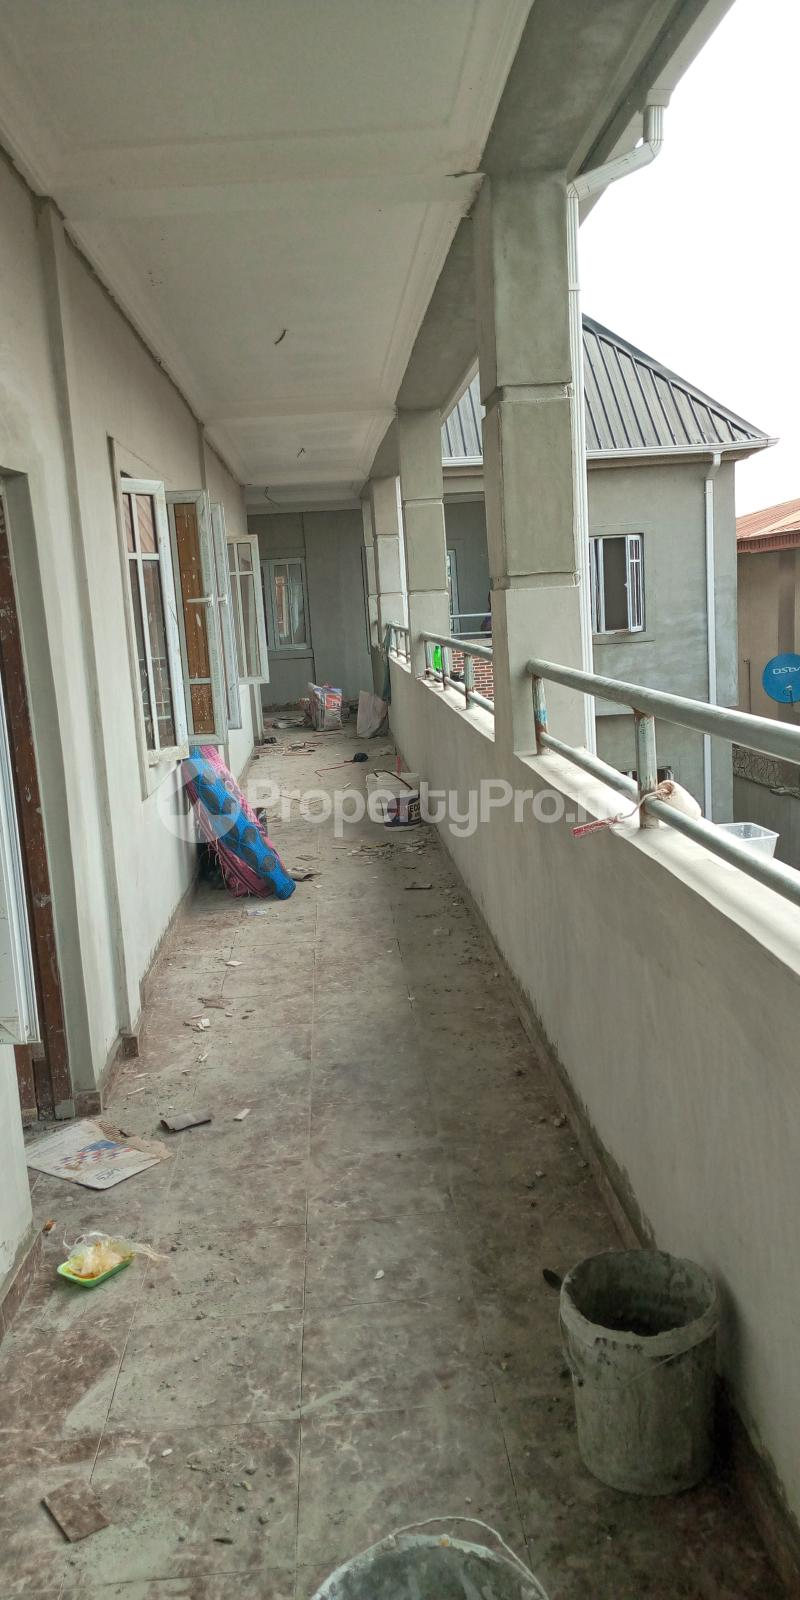 School Commercial Property for sale Eputu Ibeju-Lekki Lagos - 6